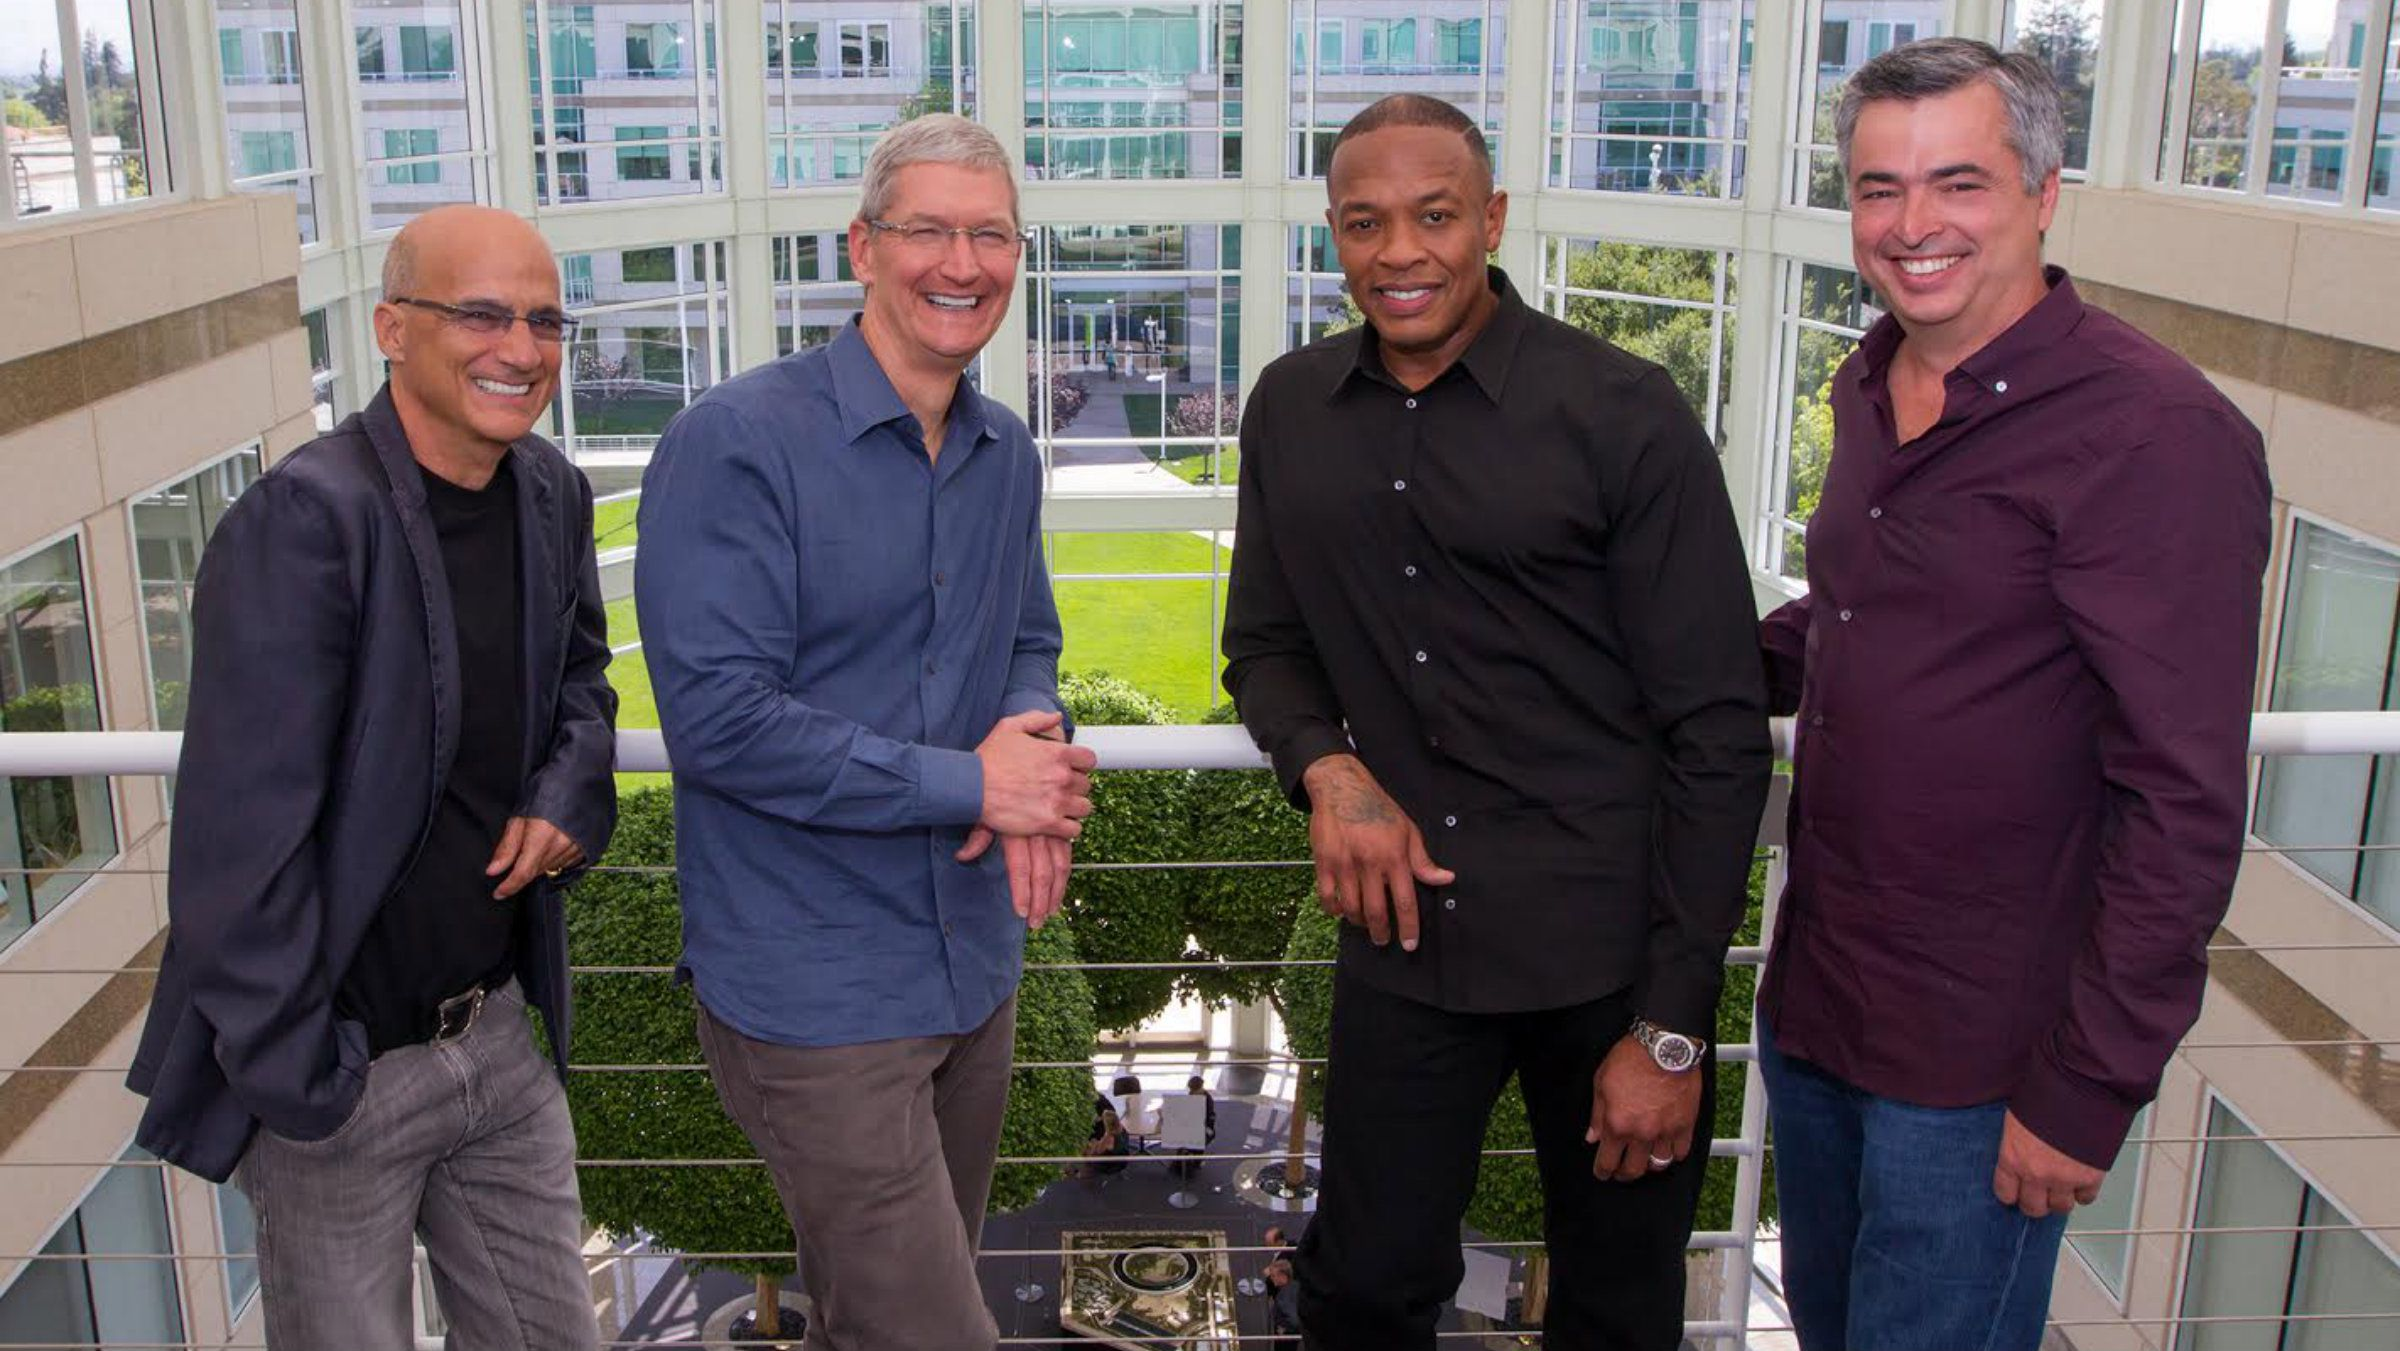 Dr Dre, Jimmy Iovine and Tim Cook